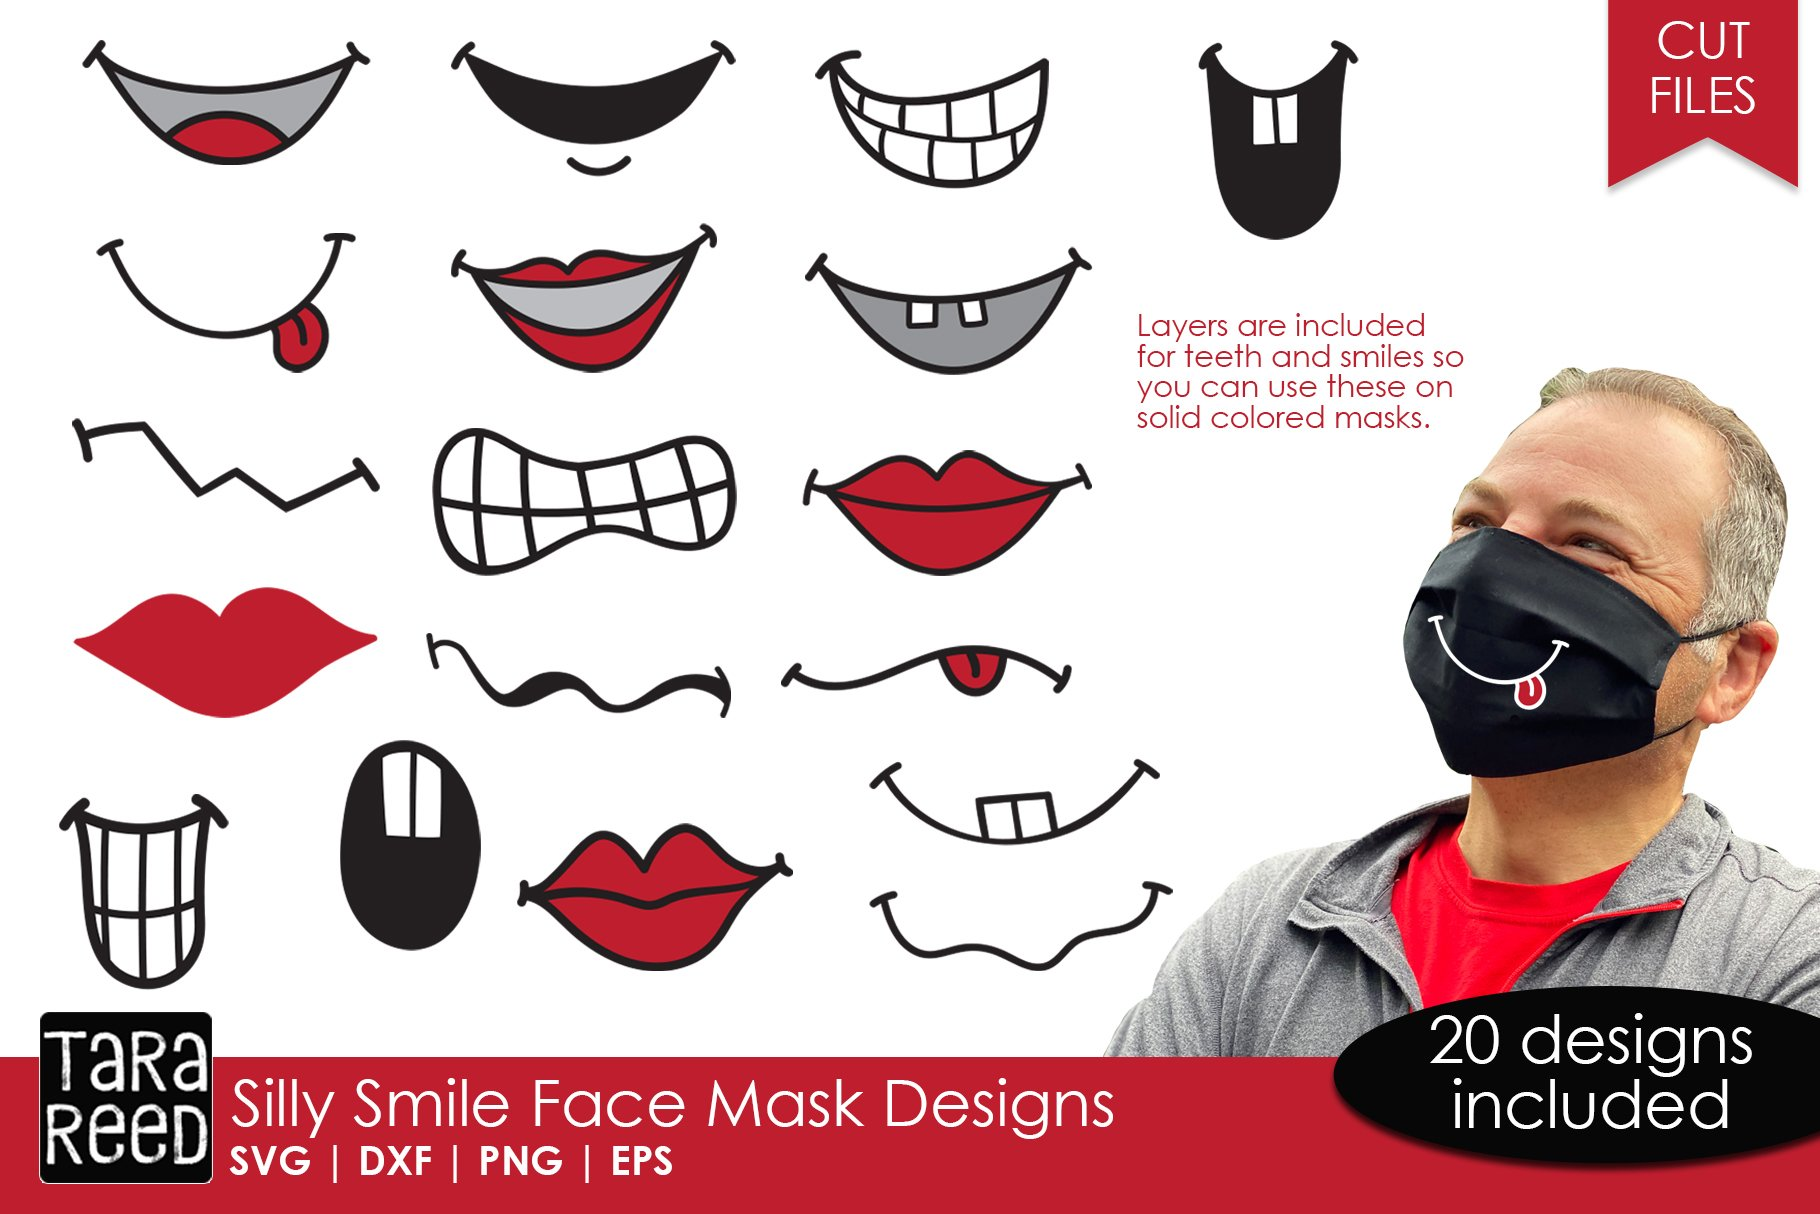 Silly Smile Face Mask Designs Svg And Cut Files 753903 Cut Files Design Bundles